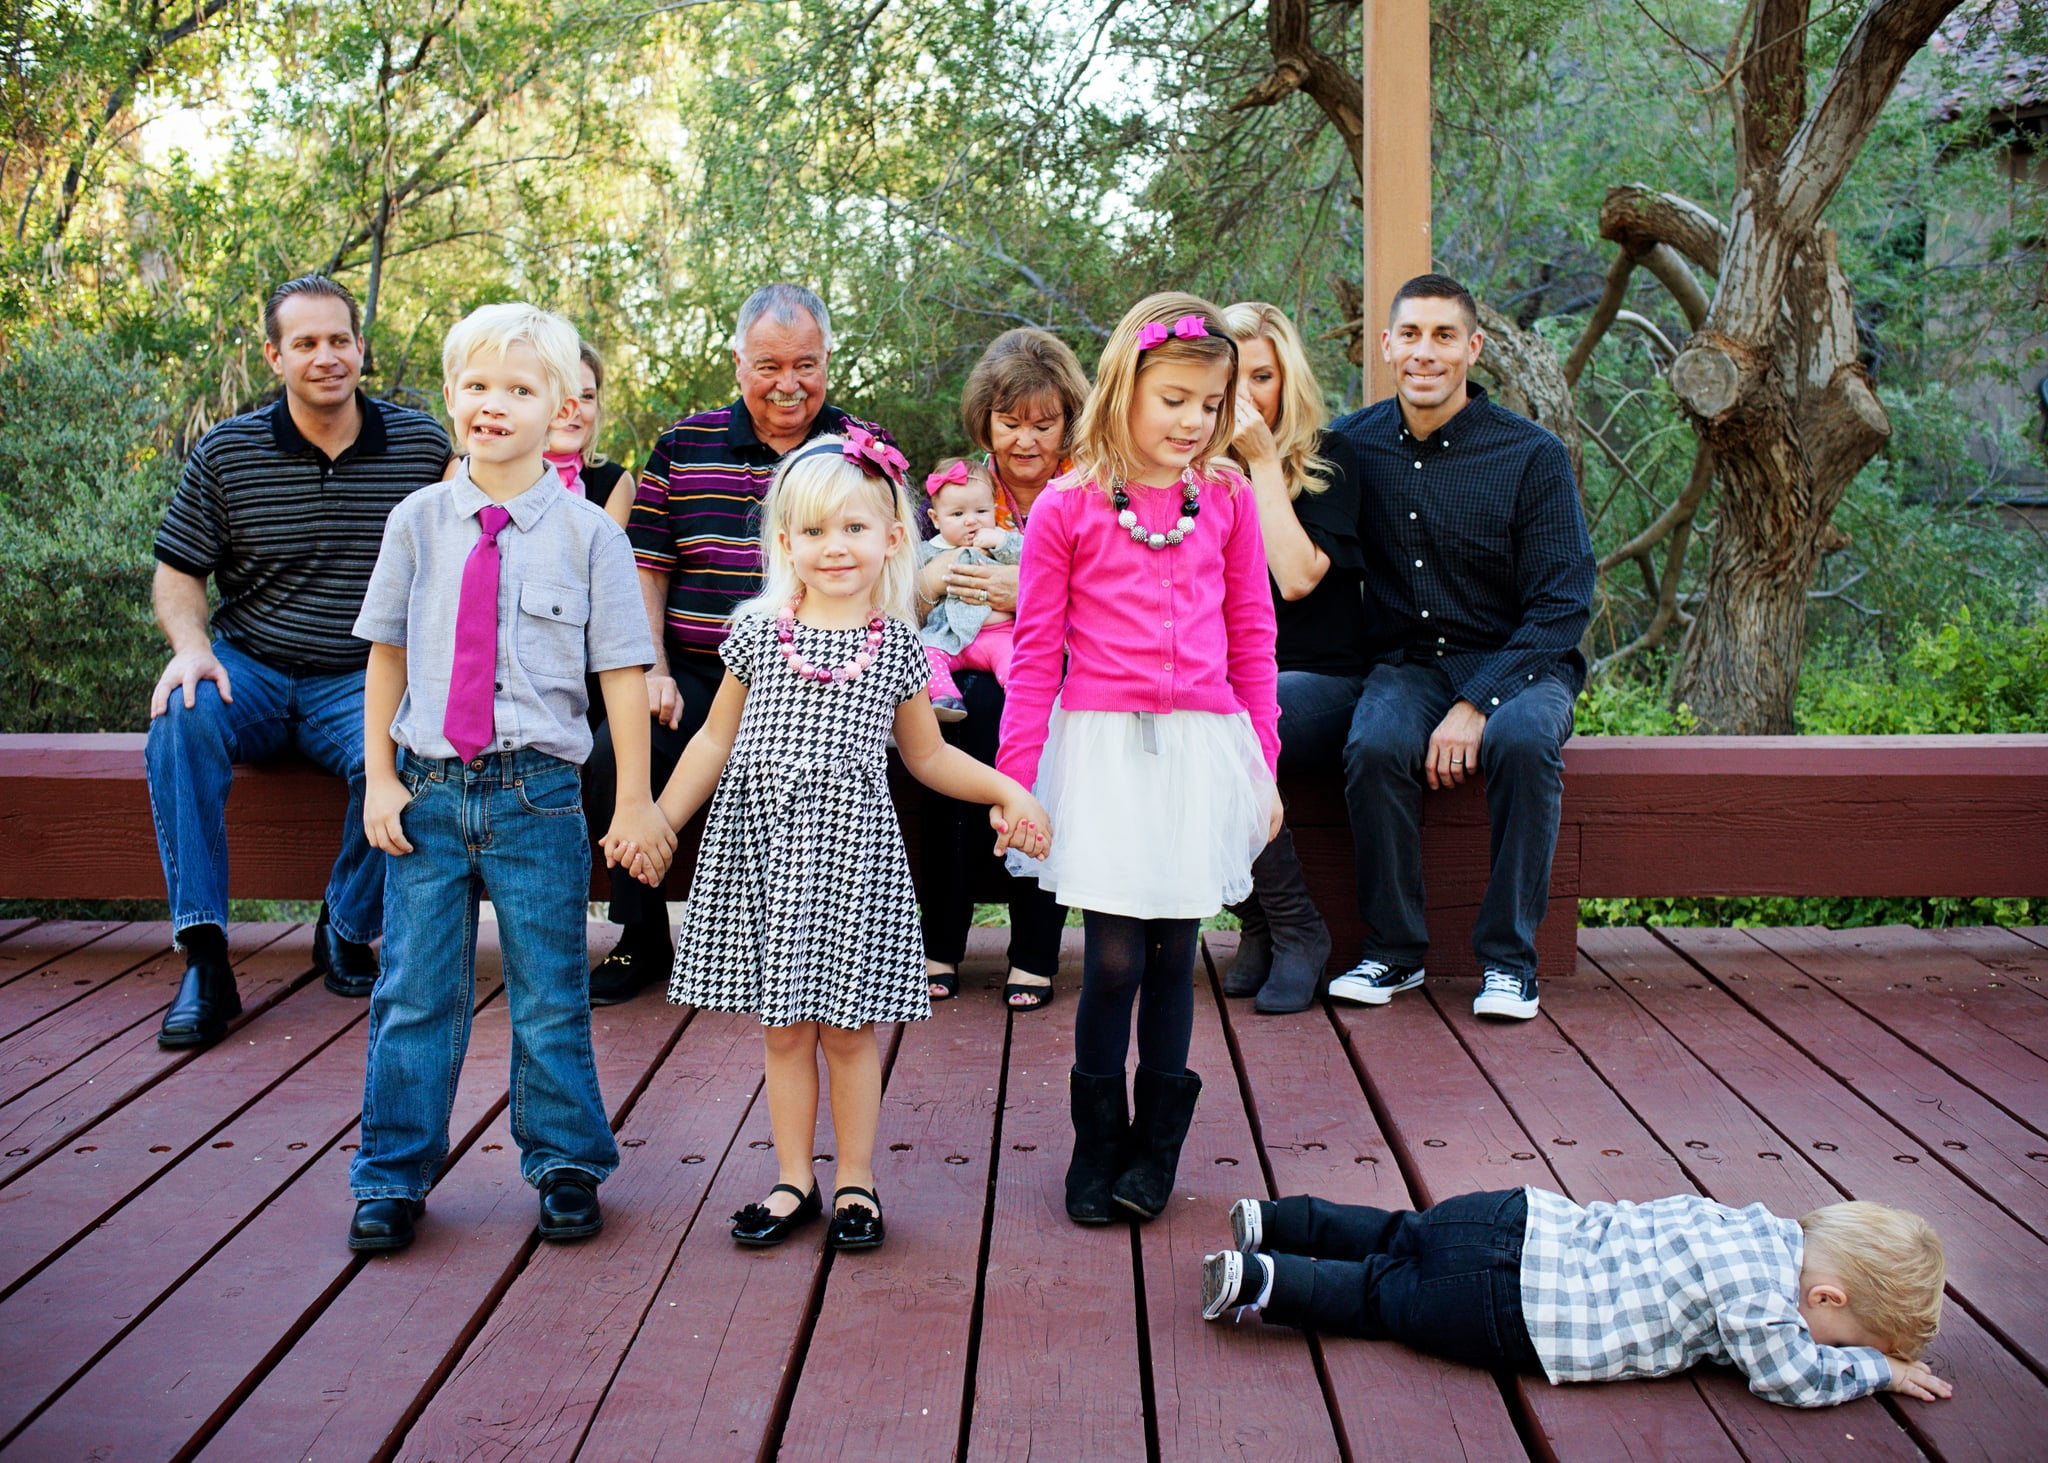 What I Learned When My Holiday Family Photos Went Horribly, Hysterically Wrong